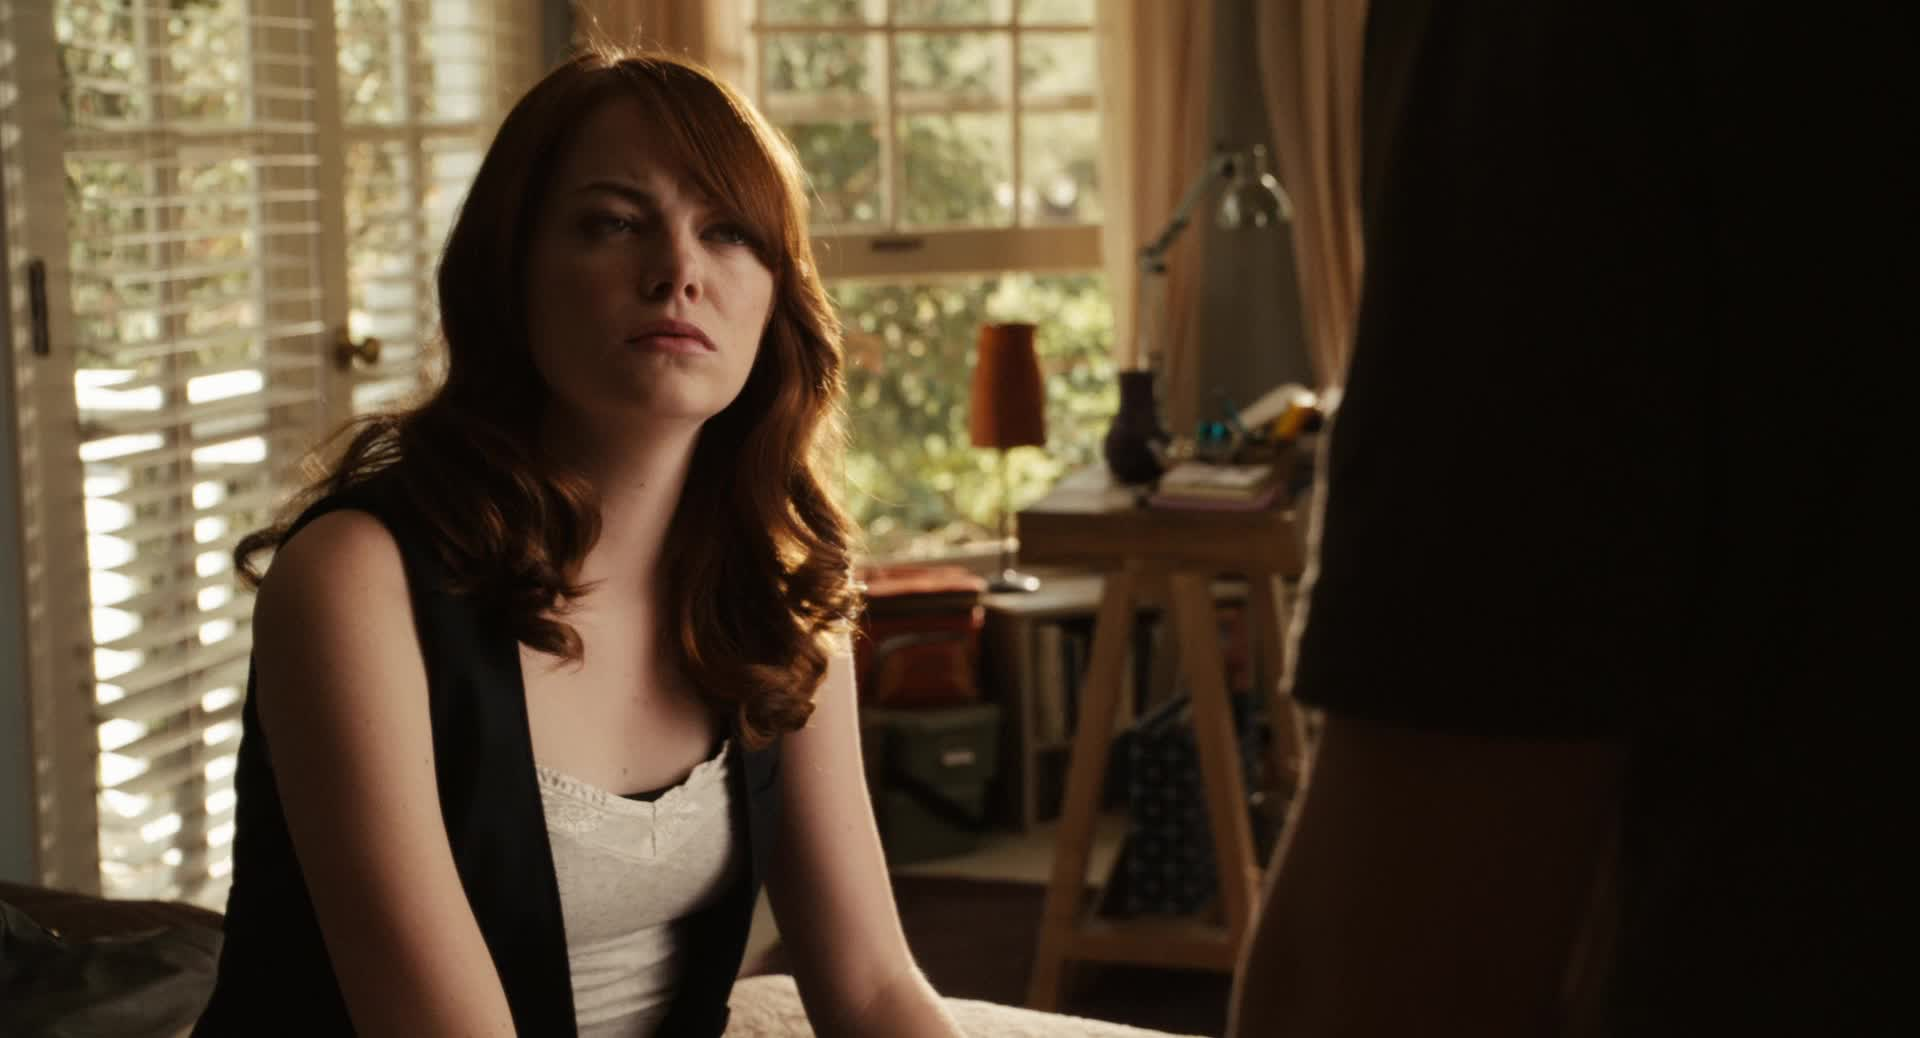 easy a, emma, emma stone, oh my god, oh my gosh, omg, stone, Oh My God GIFs